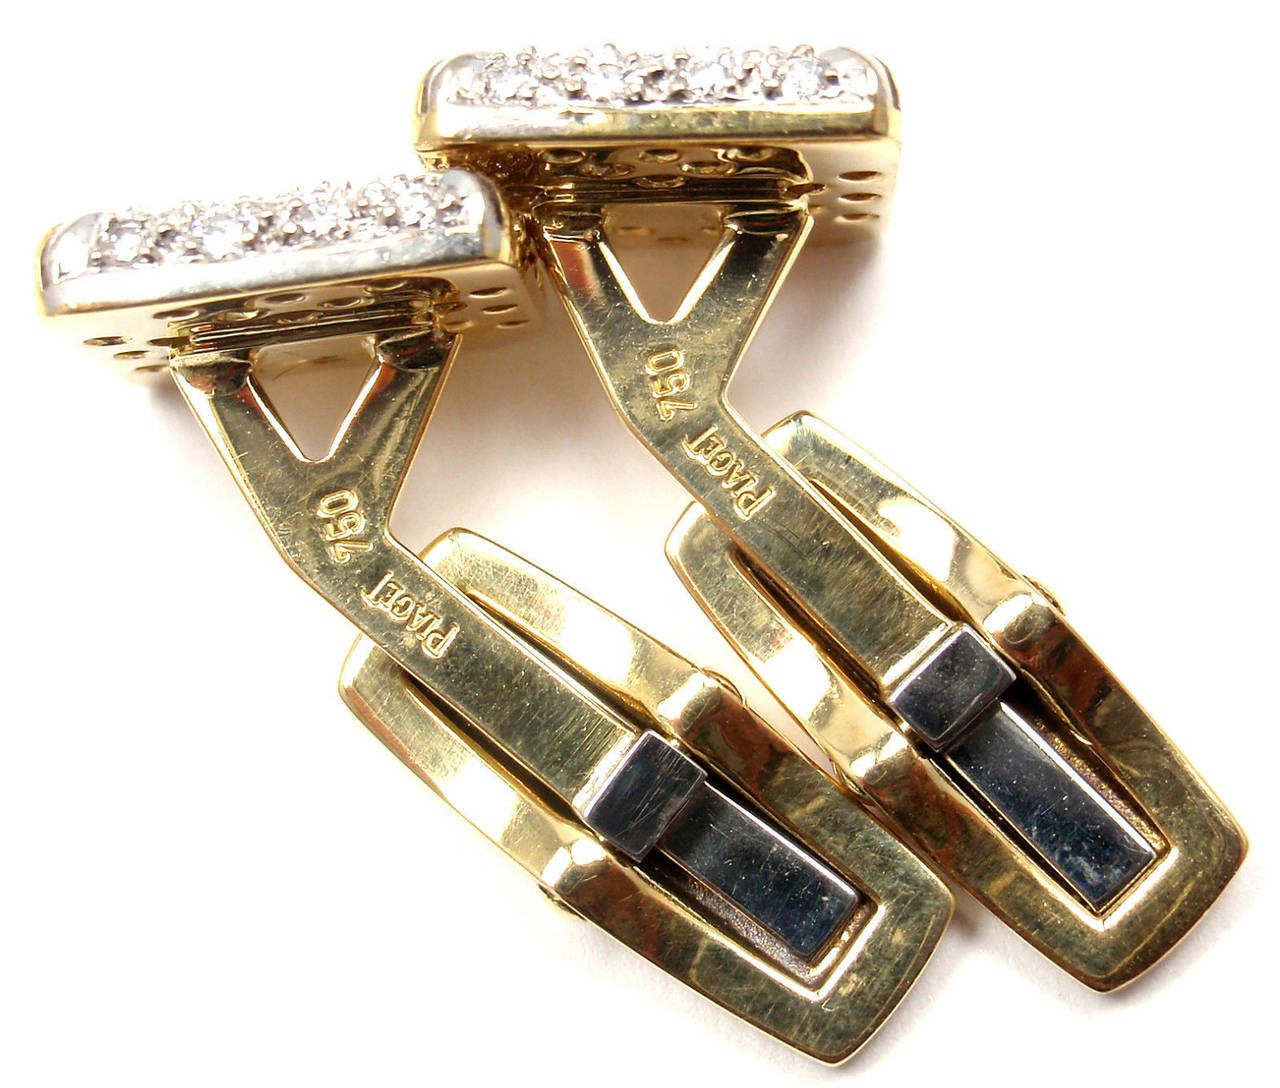 piaget diamond yellow and white gold cufflinks at 1stdibs